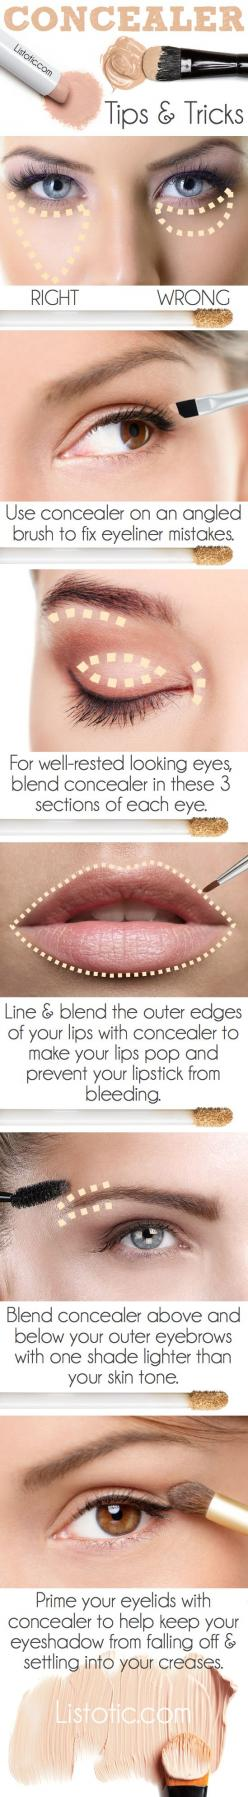 #1. Not knowing how to use your concealer   20 Beauty Mistakes You Didn't Know You Were Making: Beauty Mistake, Makeup Tutorial, Beauty Tip, Face Makeup Tip, Makeup Trick, Conceler Tip, How To Makeup Tip